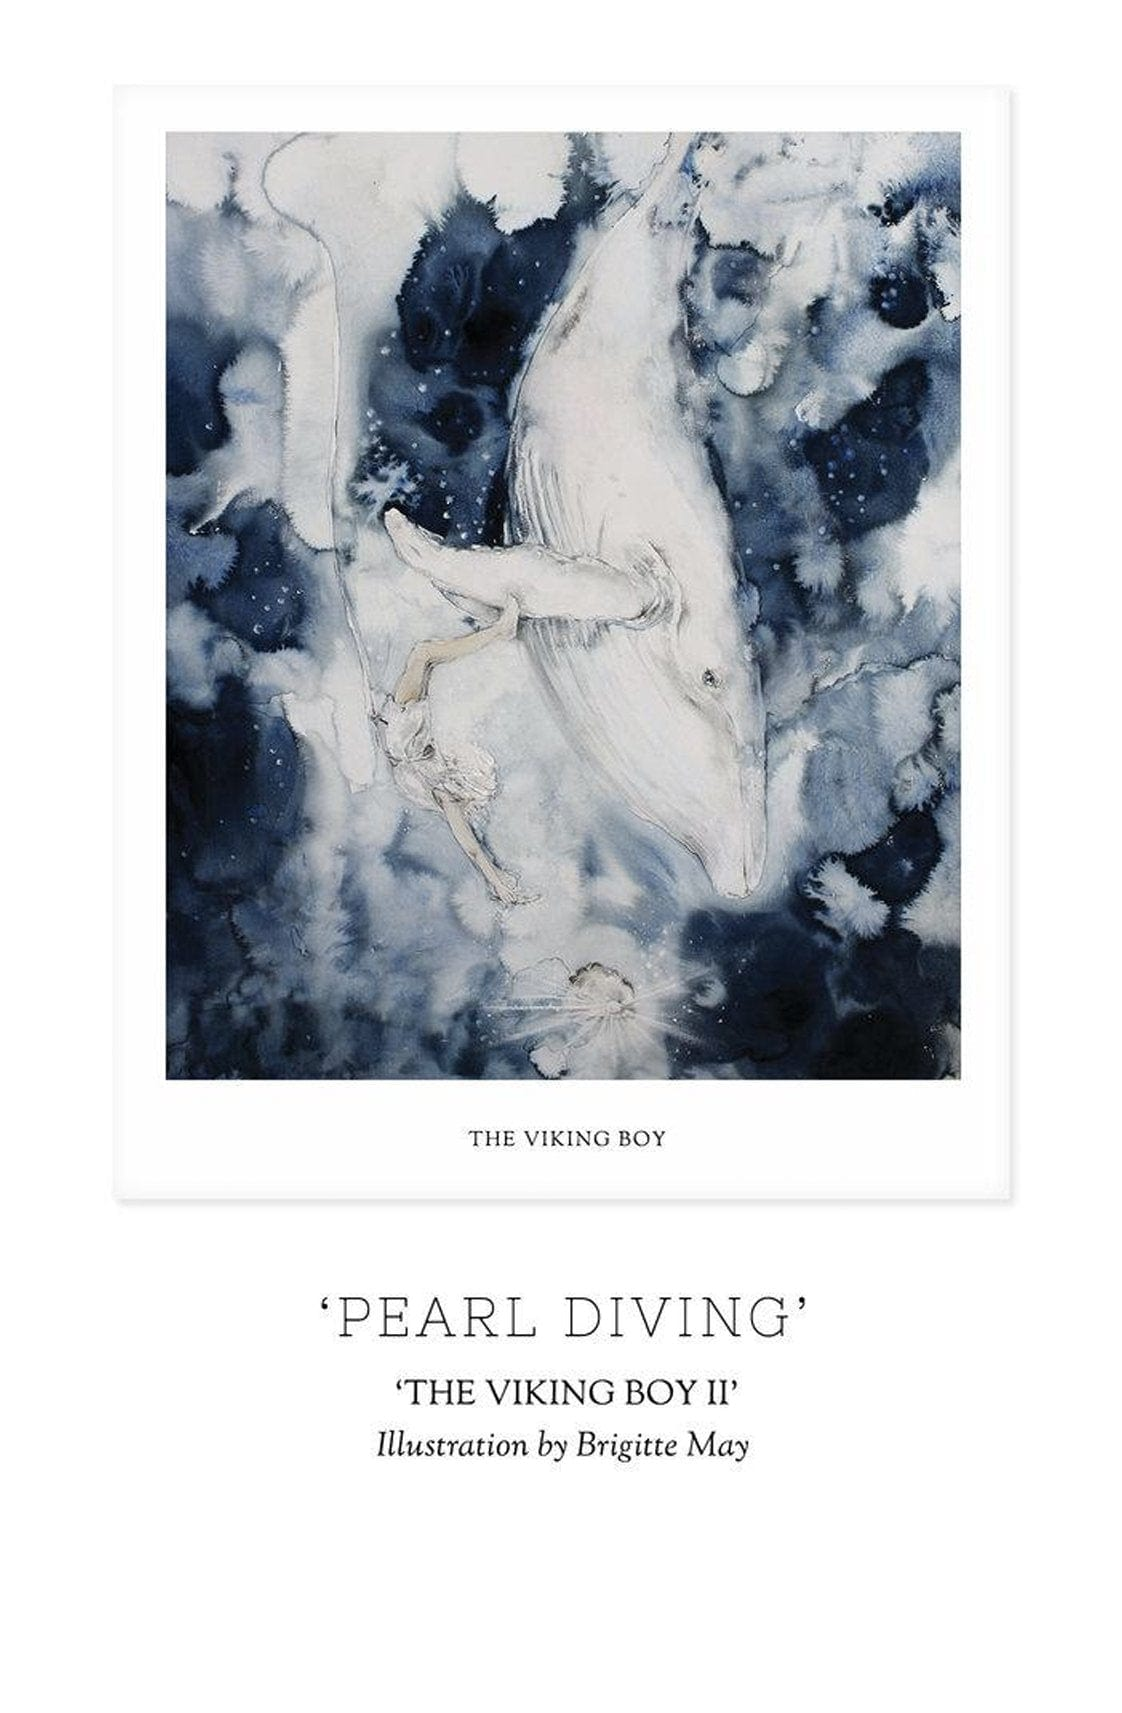 Unclebearskin Productions, THE VIKING BOY, CHAPTER II - 'PEARL DIVING' Print - Hello Little Birdie